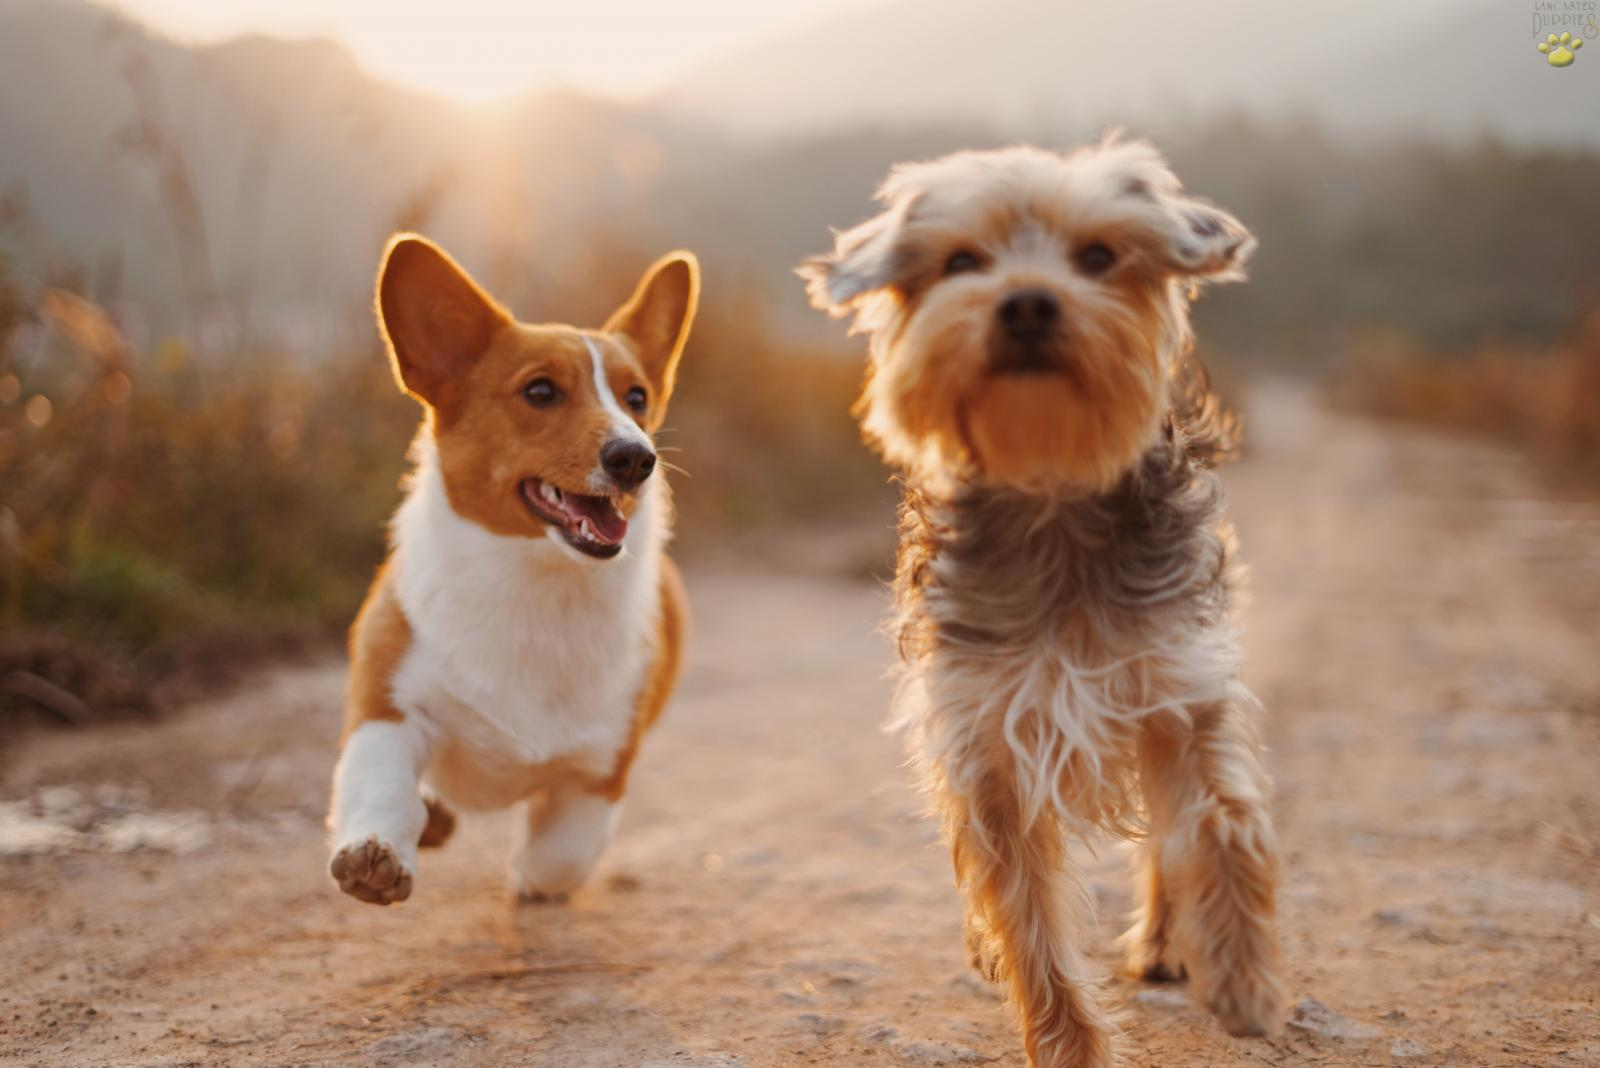 corgi and terrier playing